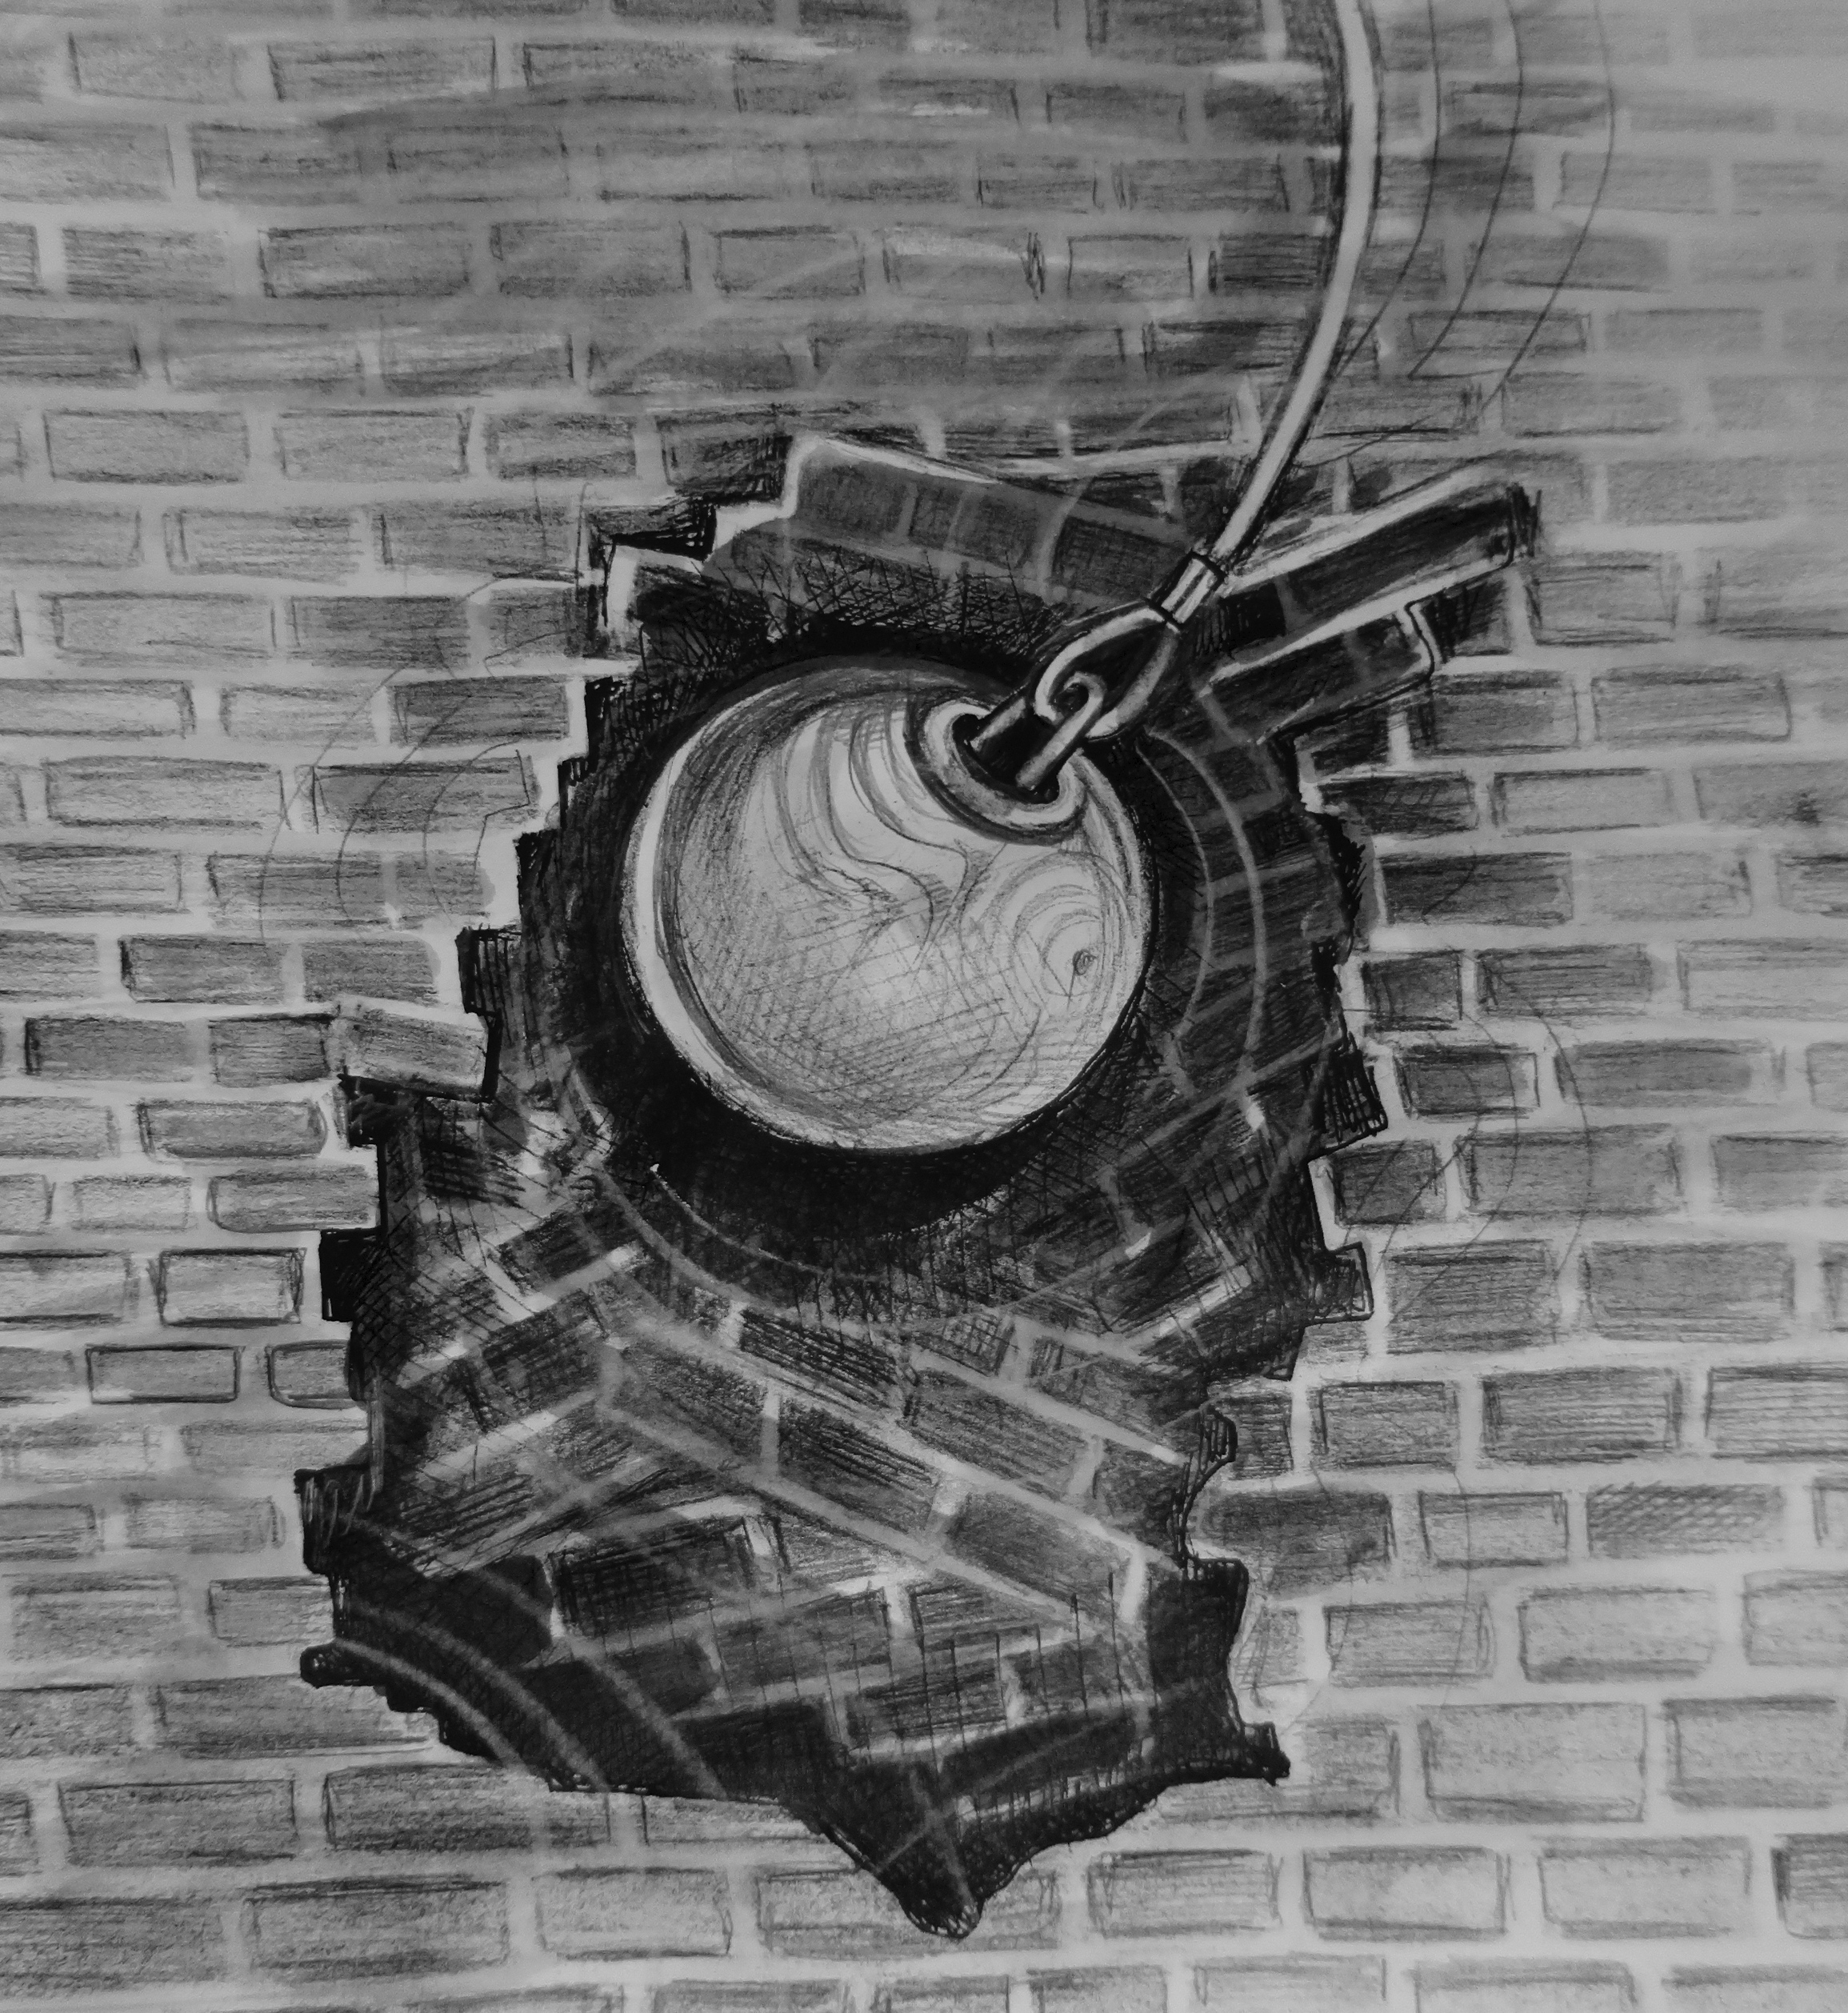 Illustration of a wrecking ball depicting Old Town's urban renewal